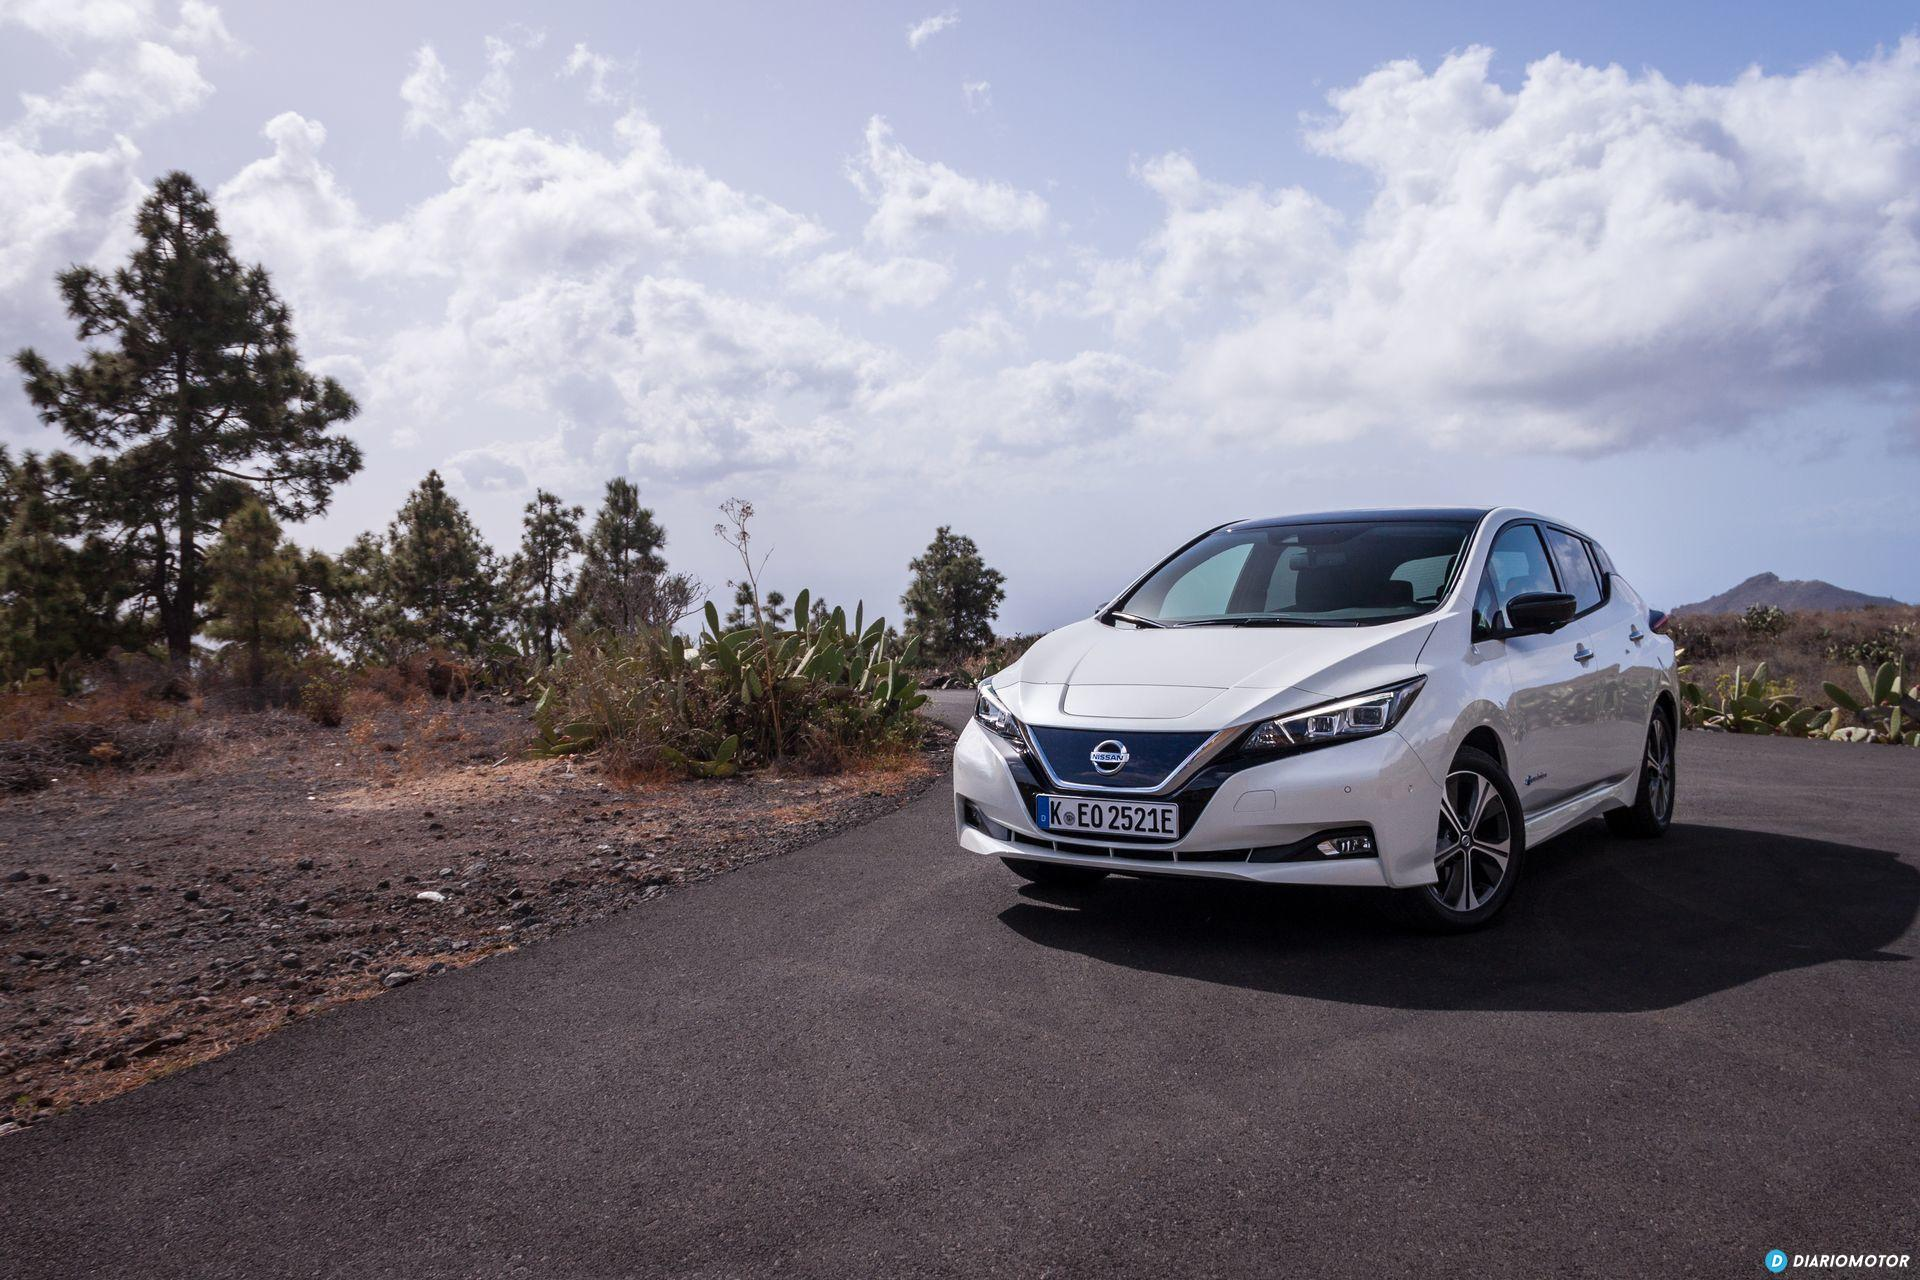 el nissan leaf e plus llegar en 2019 con una bater a de 60 kwh y ganas de hacer da o al tesla. Black Bedroom Furniture Sets. Home Design Ideas